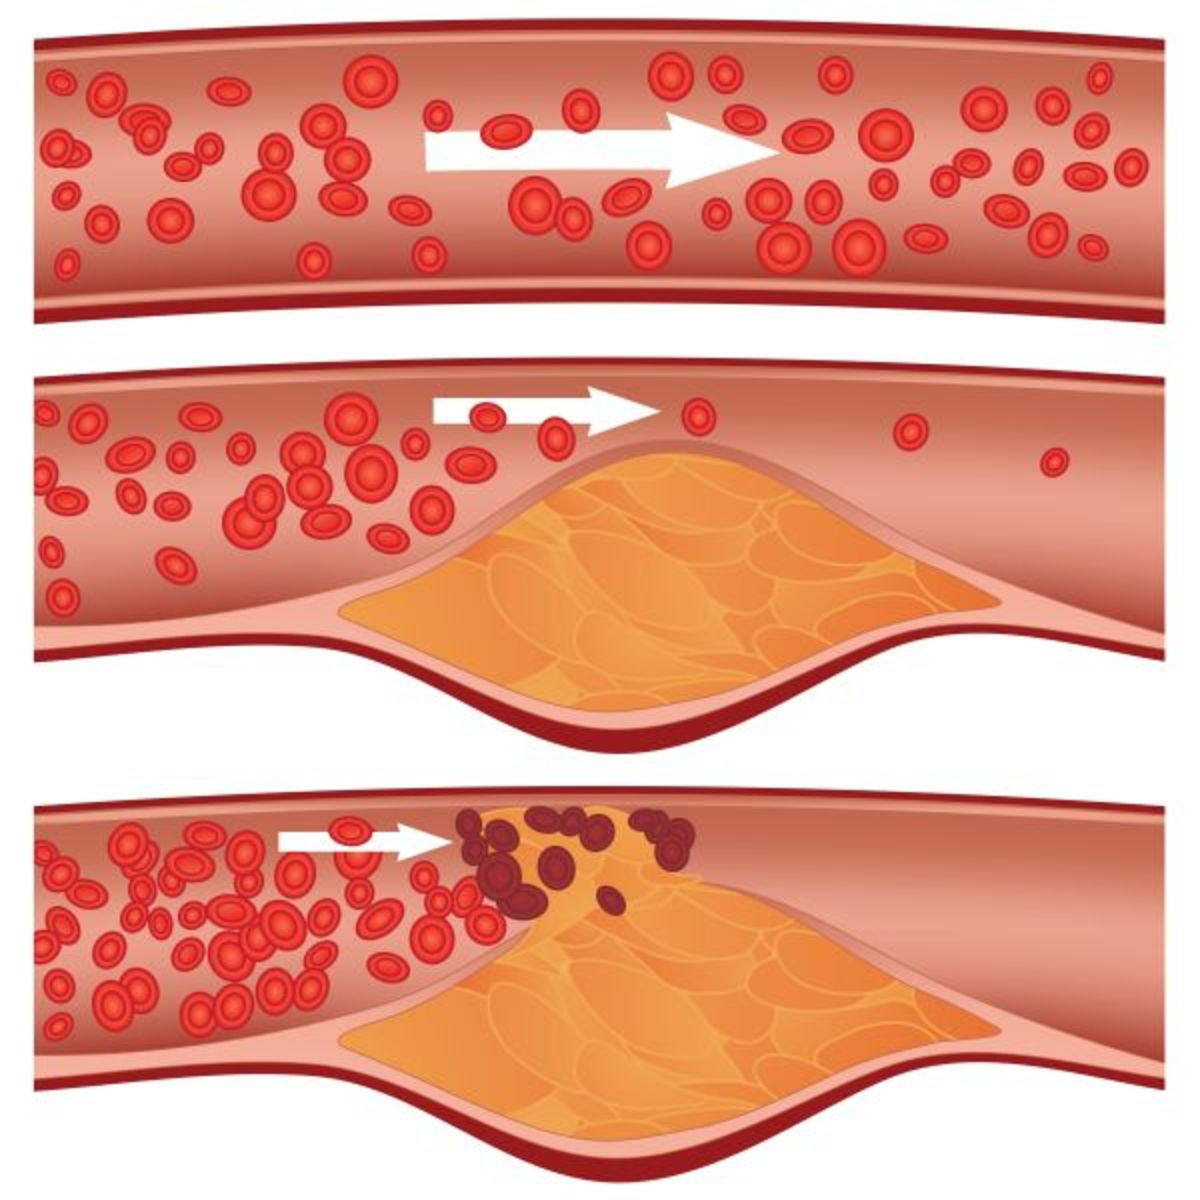 atherosclerosis - biology - as level | hubpages, Cephalic Vein